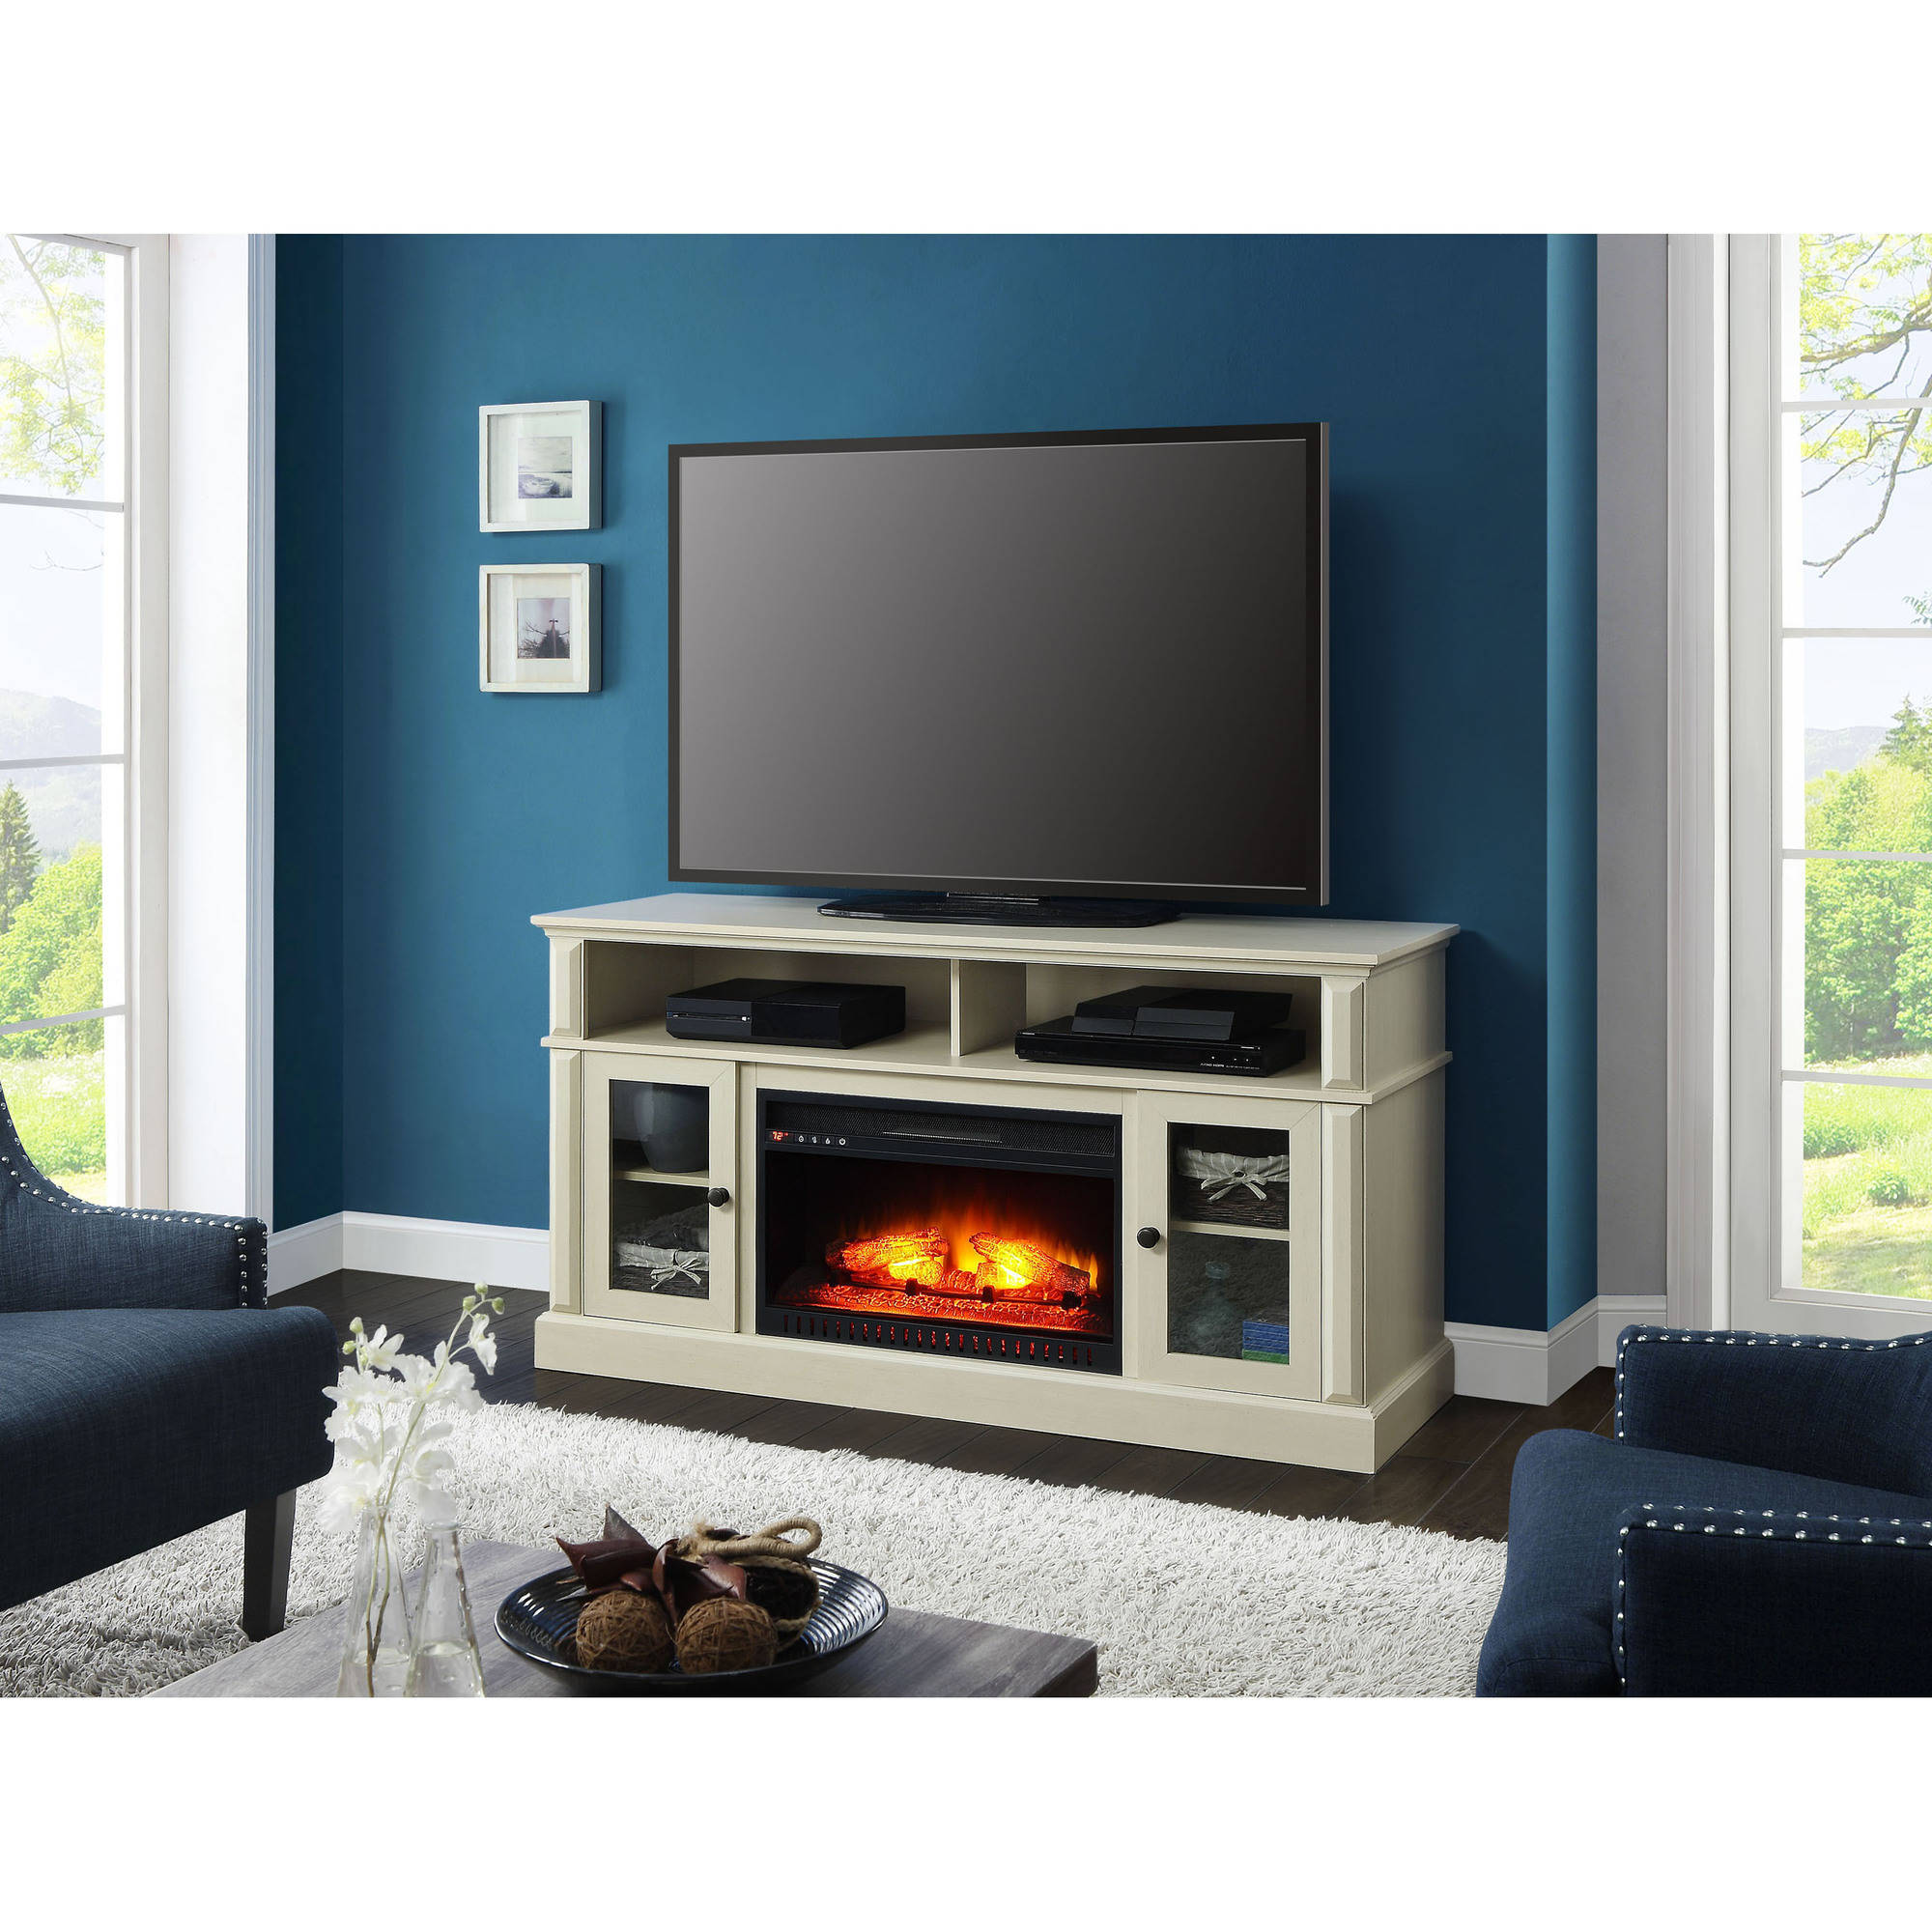 Sensational Whalen Barston Media Fireplace For Tvs Up To 70 Multiple Download Free Architecture Designs Grimeyleaguecom